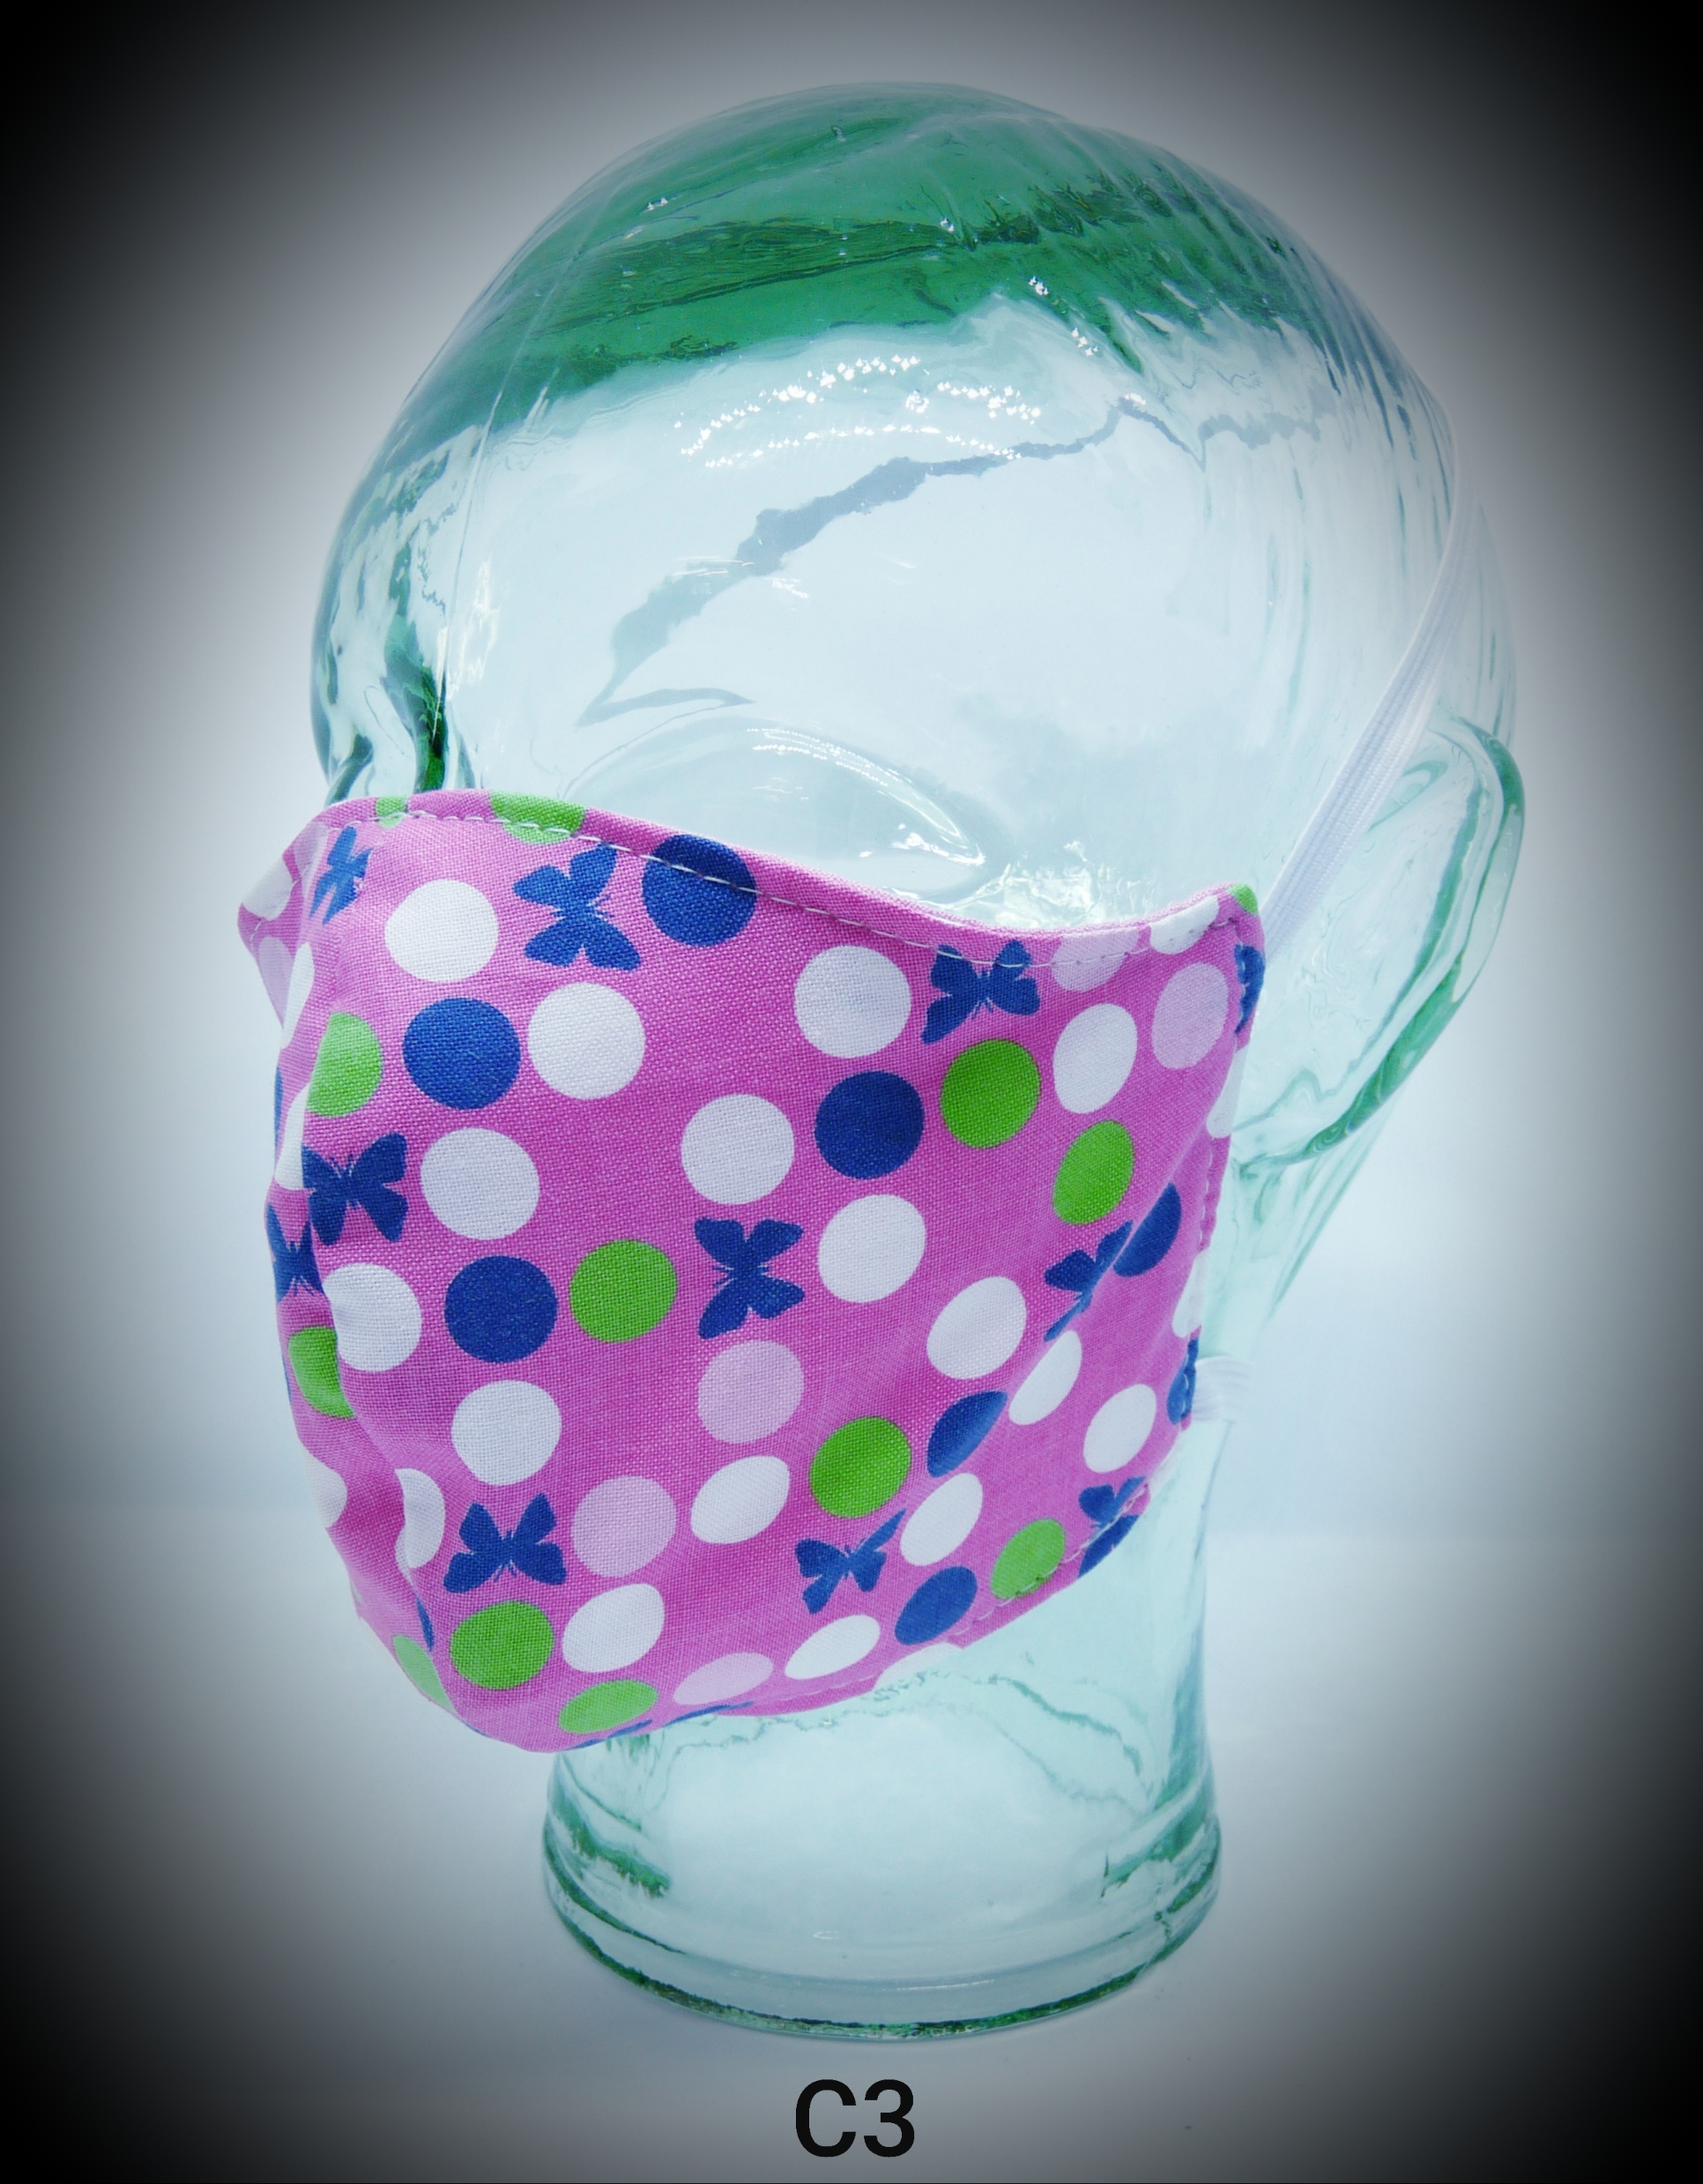 face mask washable reusable ppe c3 pink white blue spots fabric